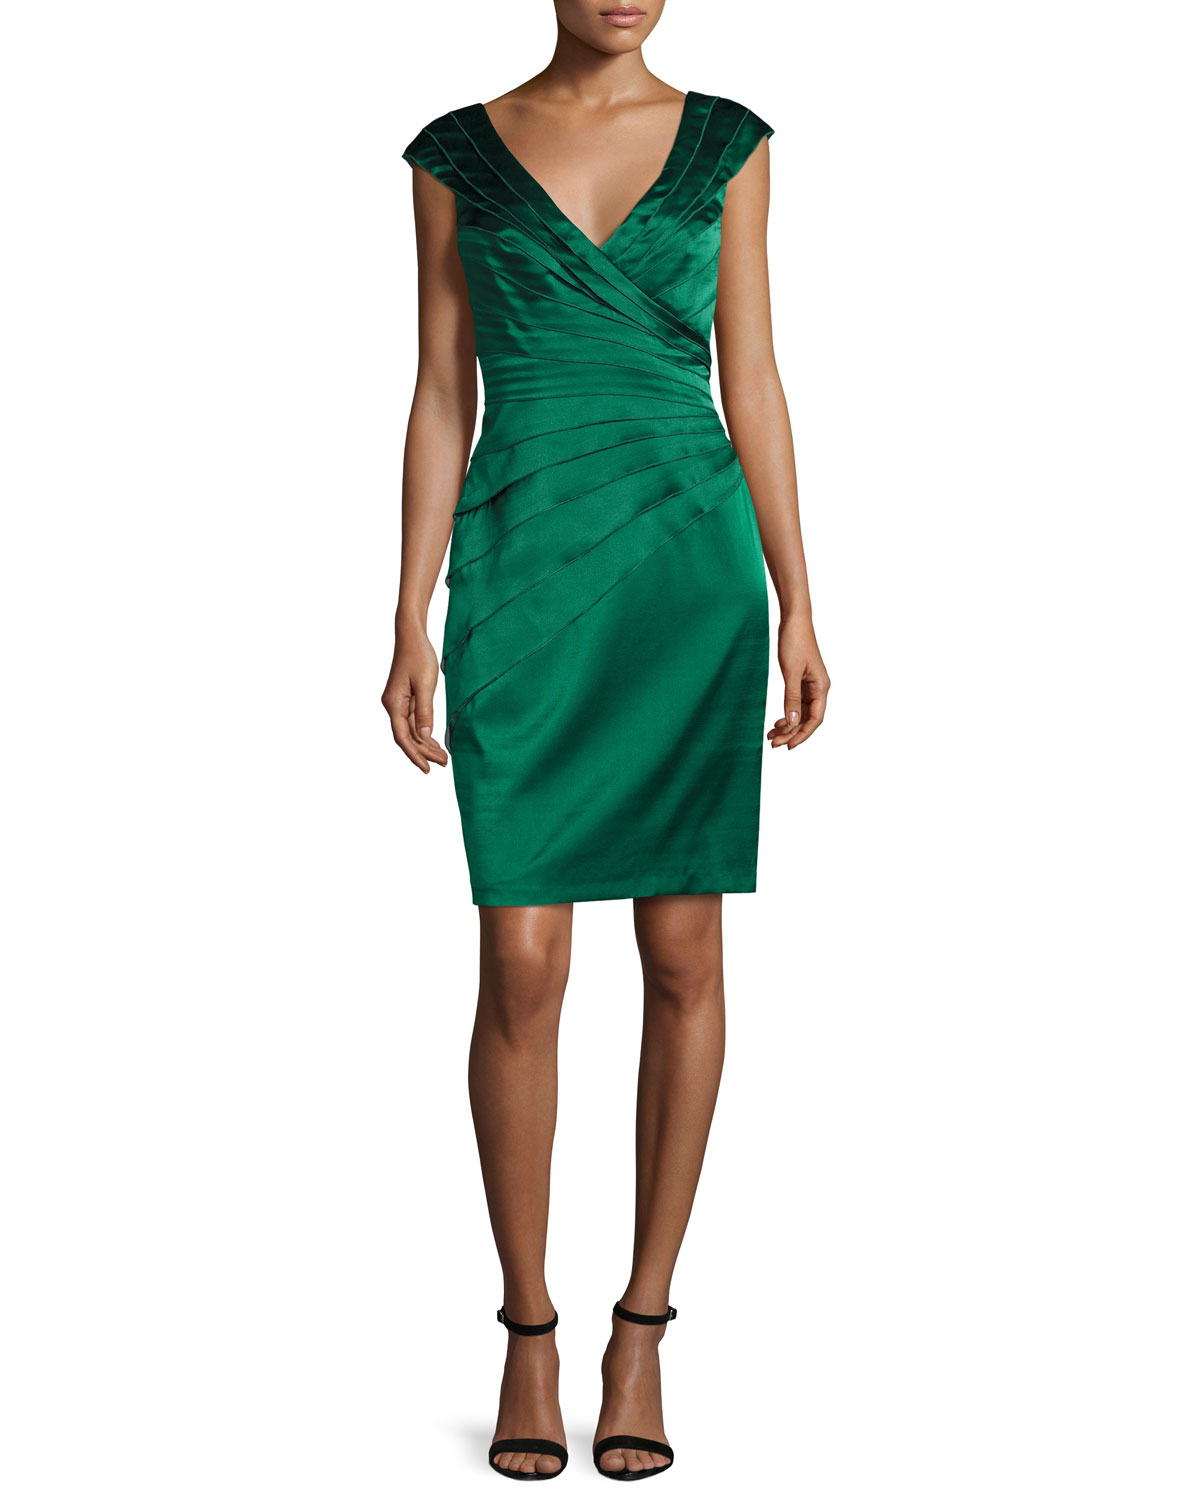 Cap-Sleeve Tiered Stretch Satin Cocktail Dress, Ivy